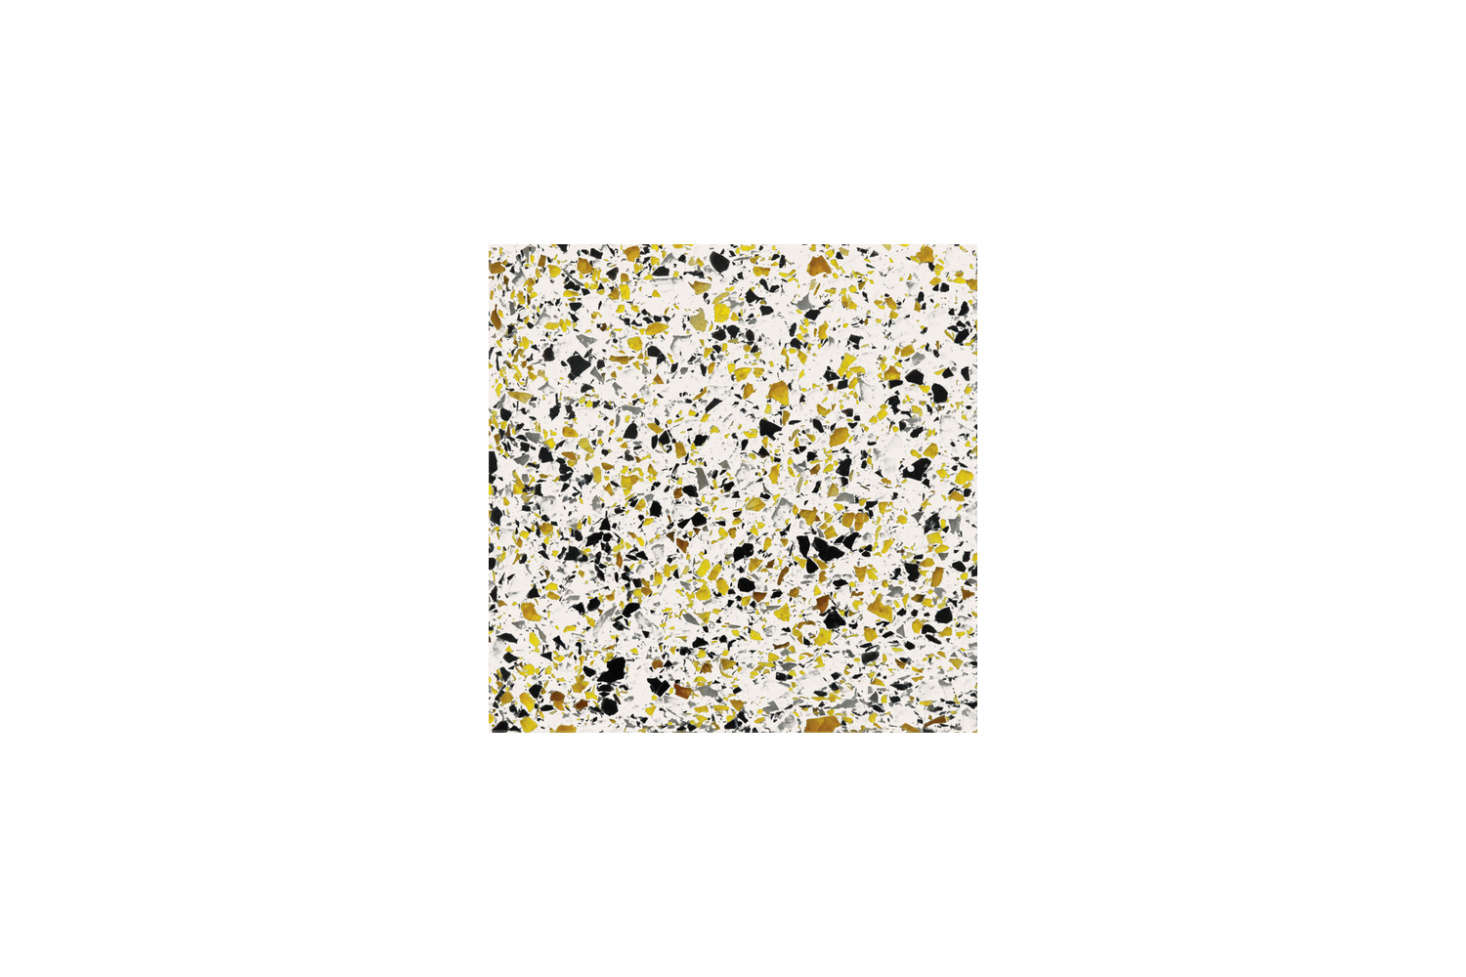 The countertop, backsplash, and integrated sink are all made with terrazzo cast with recycled glass with colors individually selected by Yun and August. For something similar, Wausau Tile&#8